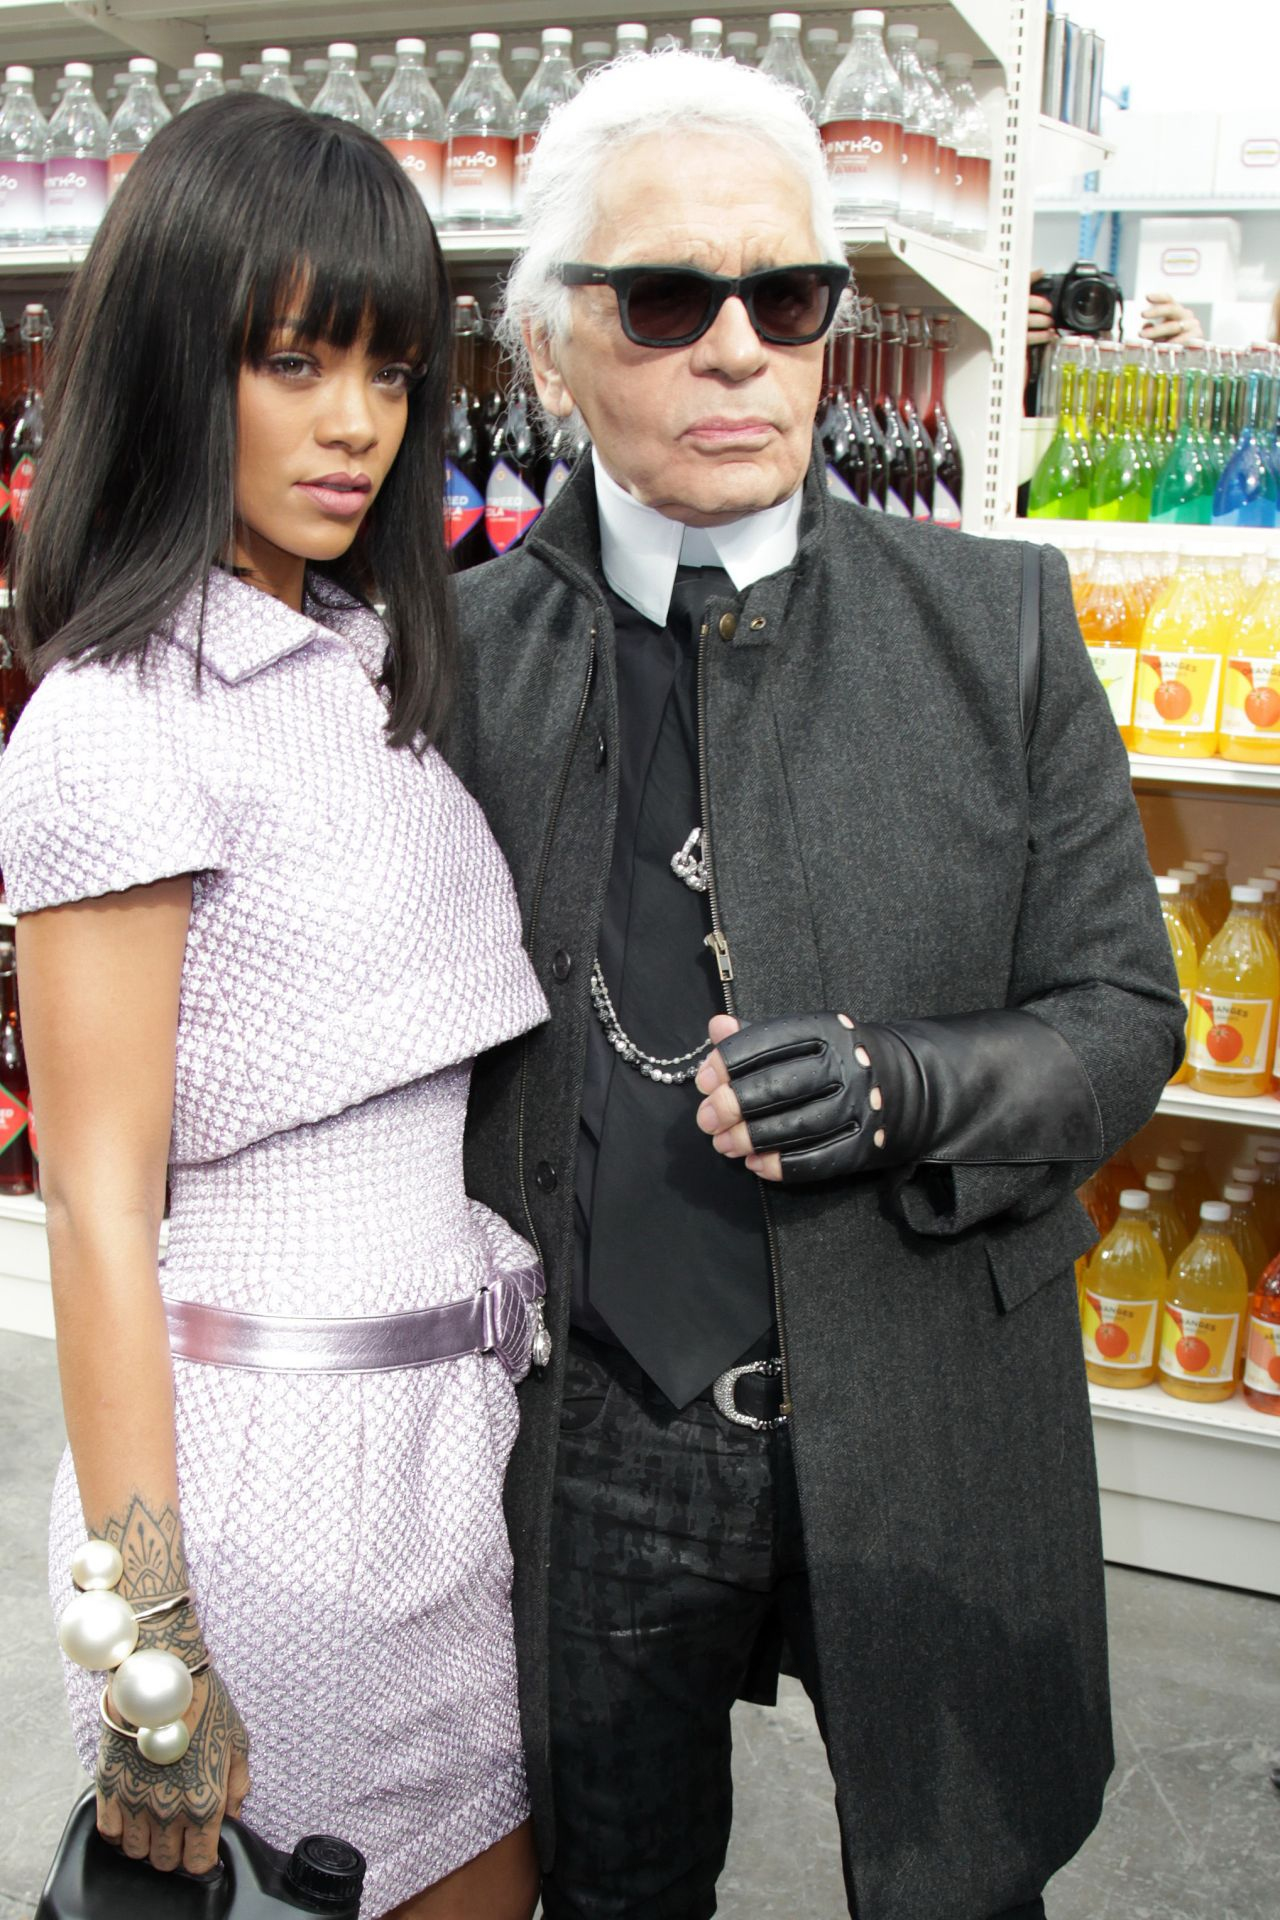 Rihanna and Karl Lagerfeld in Paris - Chanel F/W Fashion Show - March 2014